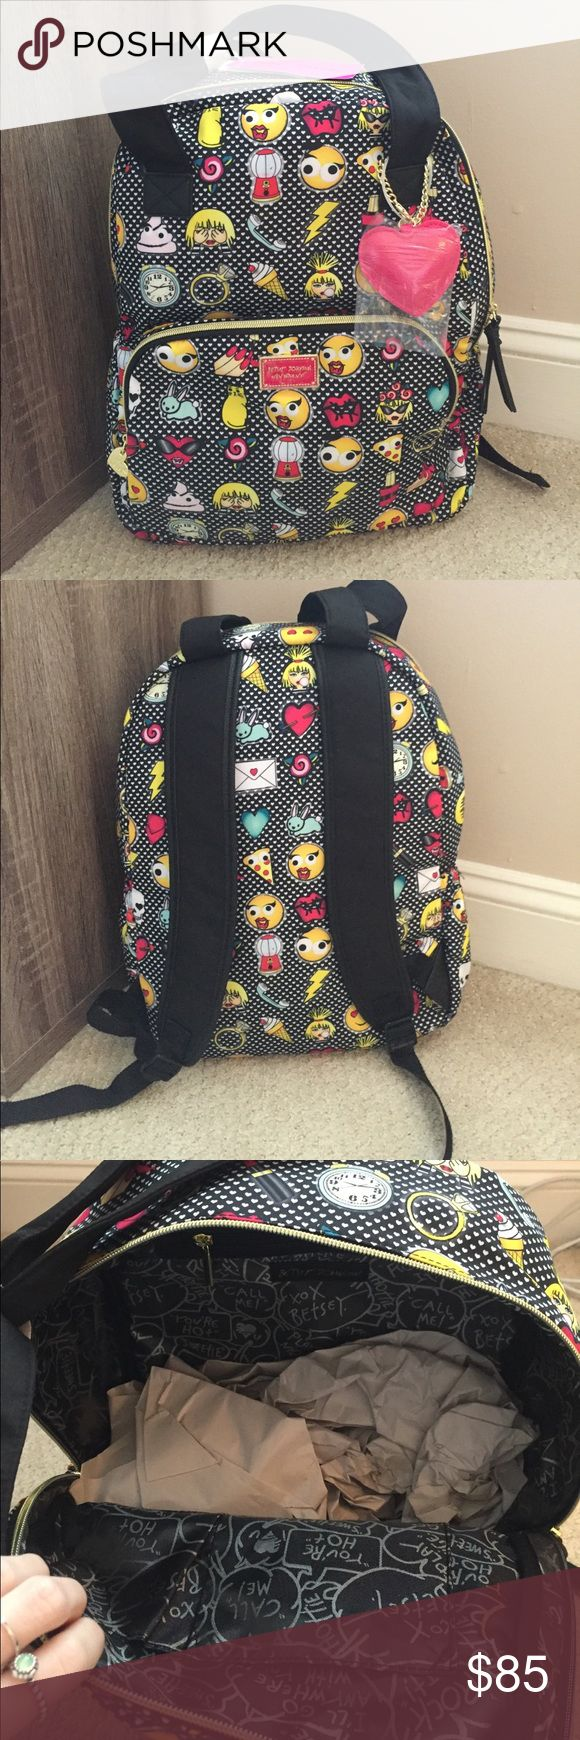 BETSEY JOHNSON New York Emoji 2 Backpack NWT! Doubles as a tote and a backpack! Perfect gift! Hard to find! Betsey Johnson Bags Backpacks